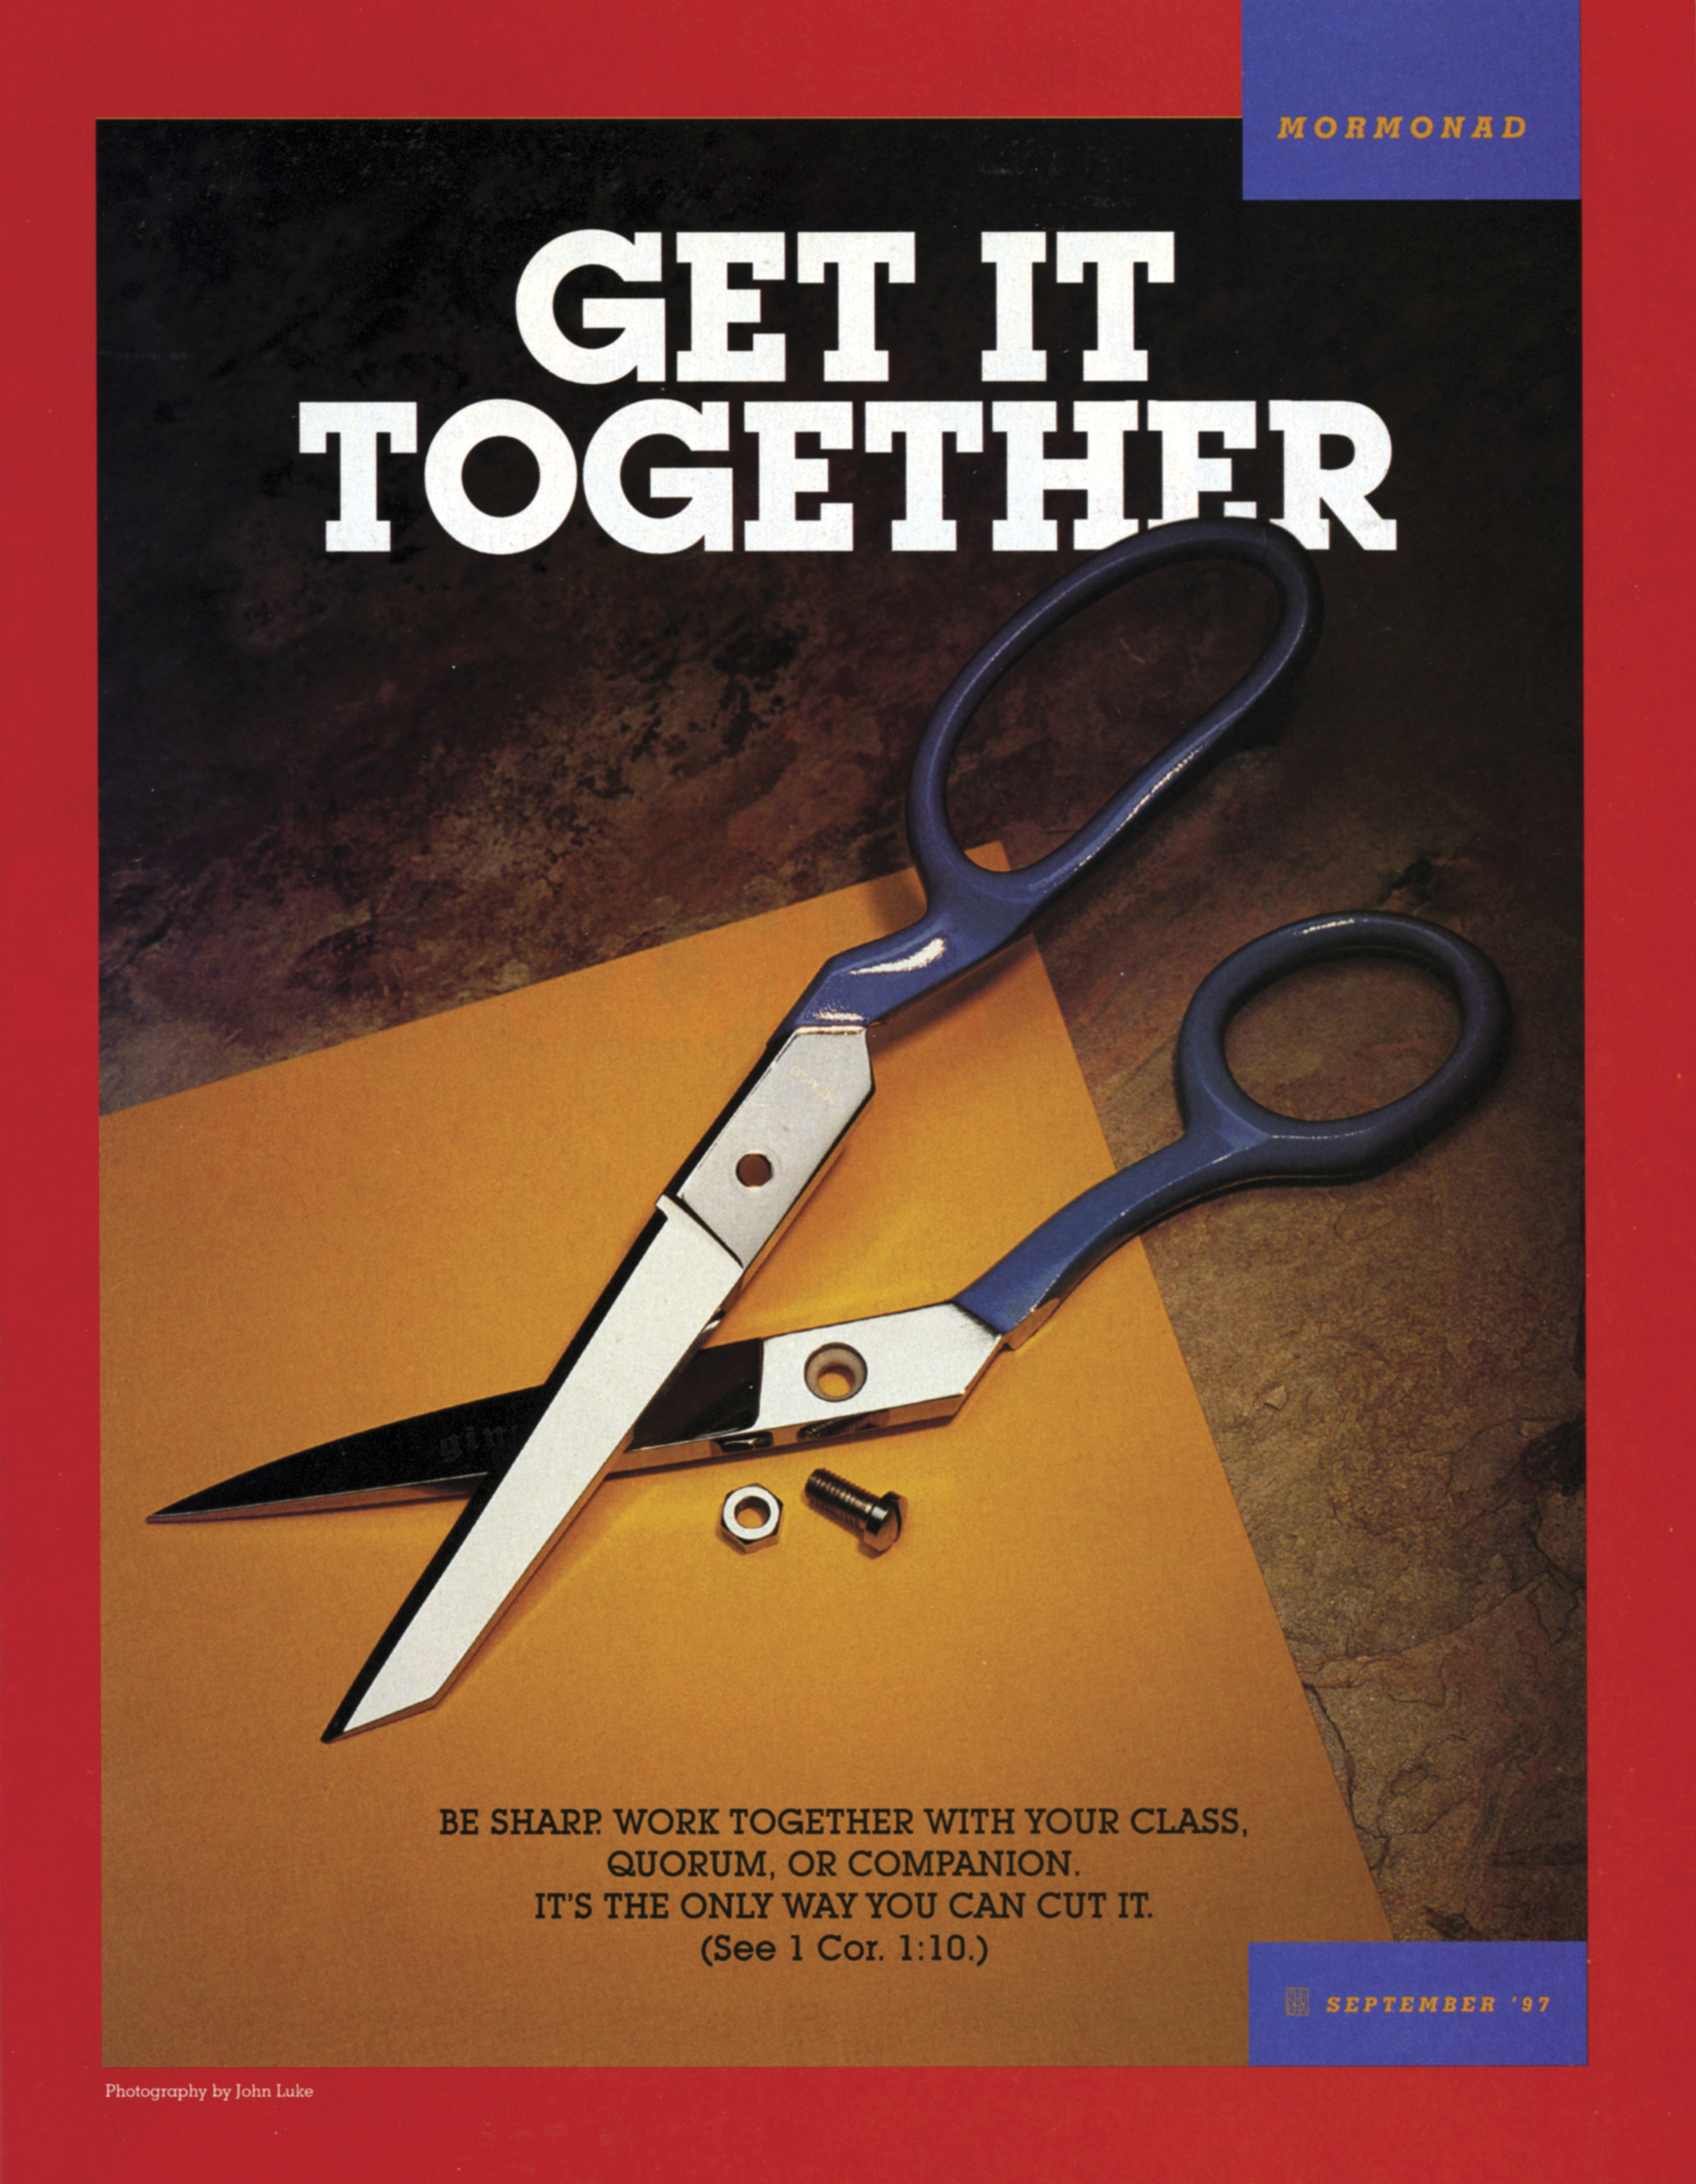 Get It Together. Be sharp. Work together with your class, quorum, or companion. It's the only way you can cut it. (See 1 Cor. 1:10.) Sept. 1997 © undefined ipCode 1.